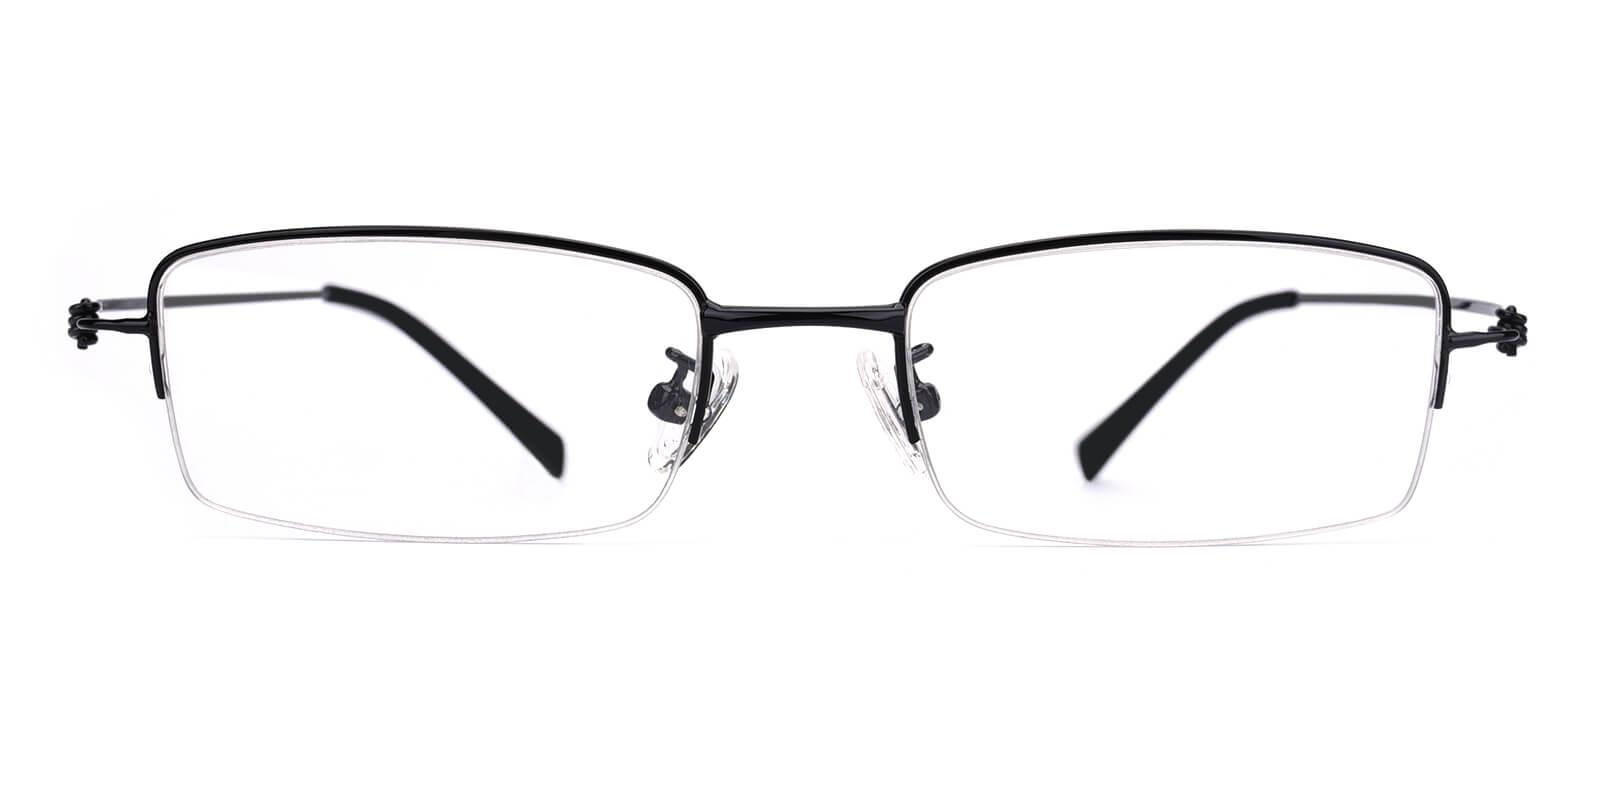 Rector-Black-Rectangle-Metal-Eyeglasses-additional2